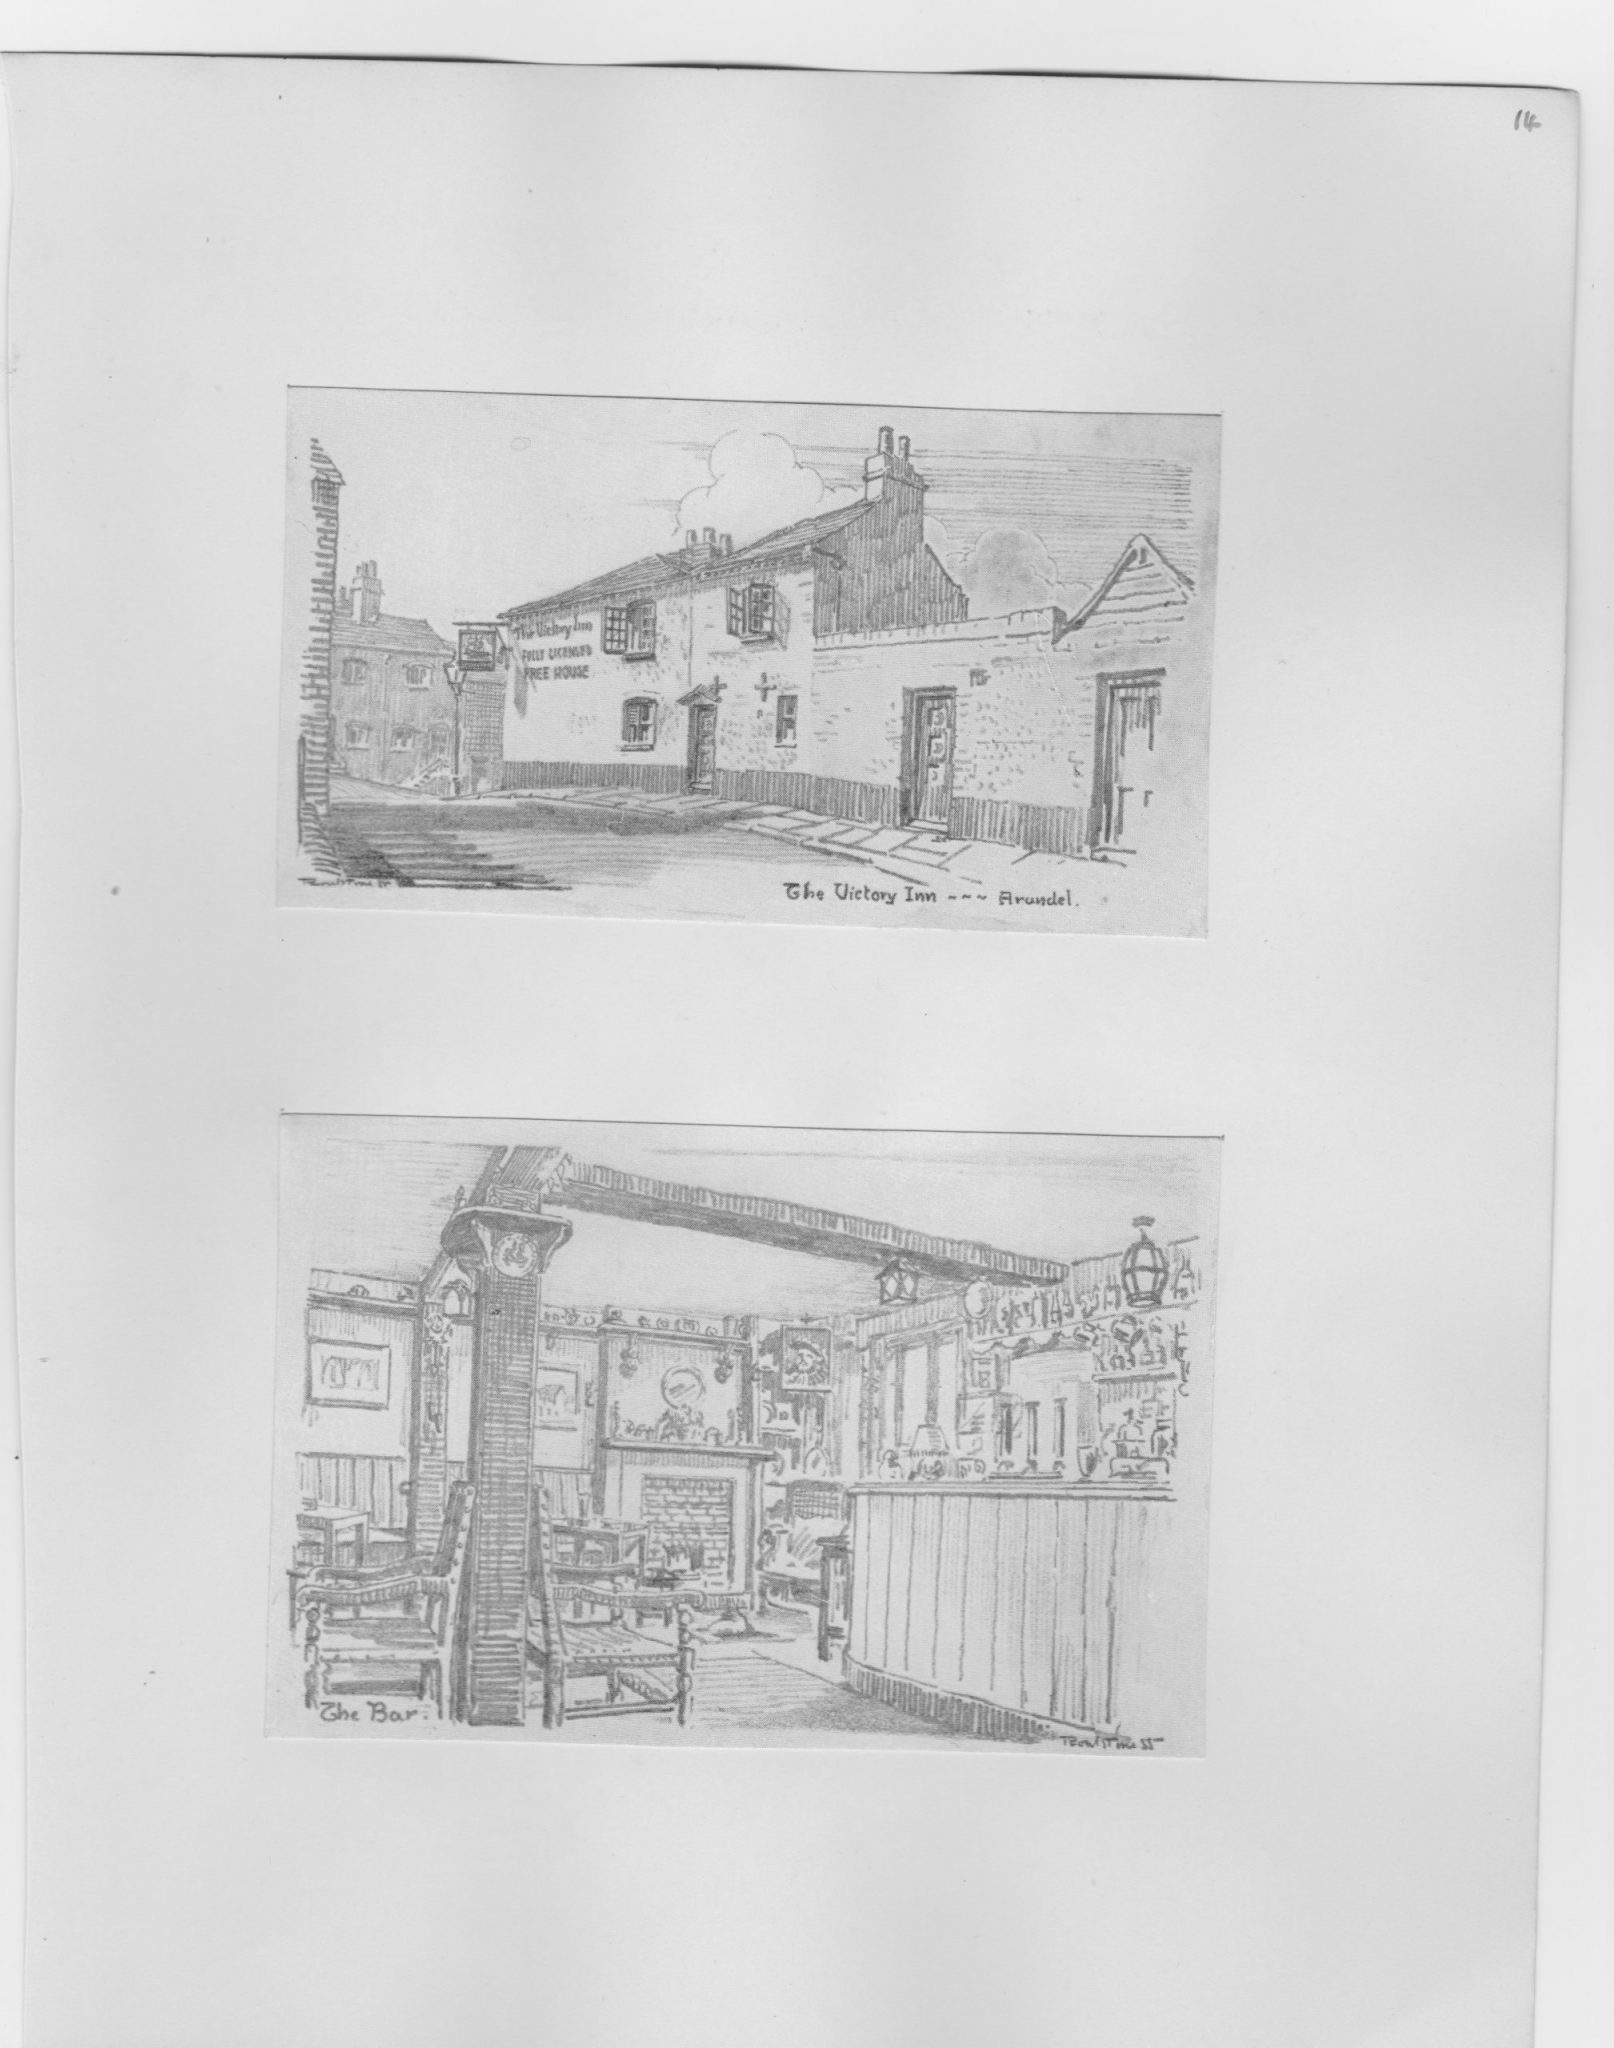 Two old postcards with drawings of old English pubs